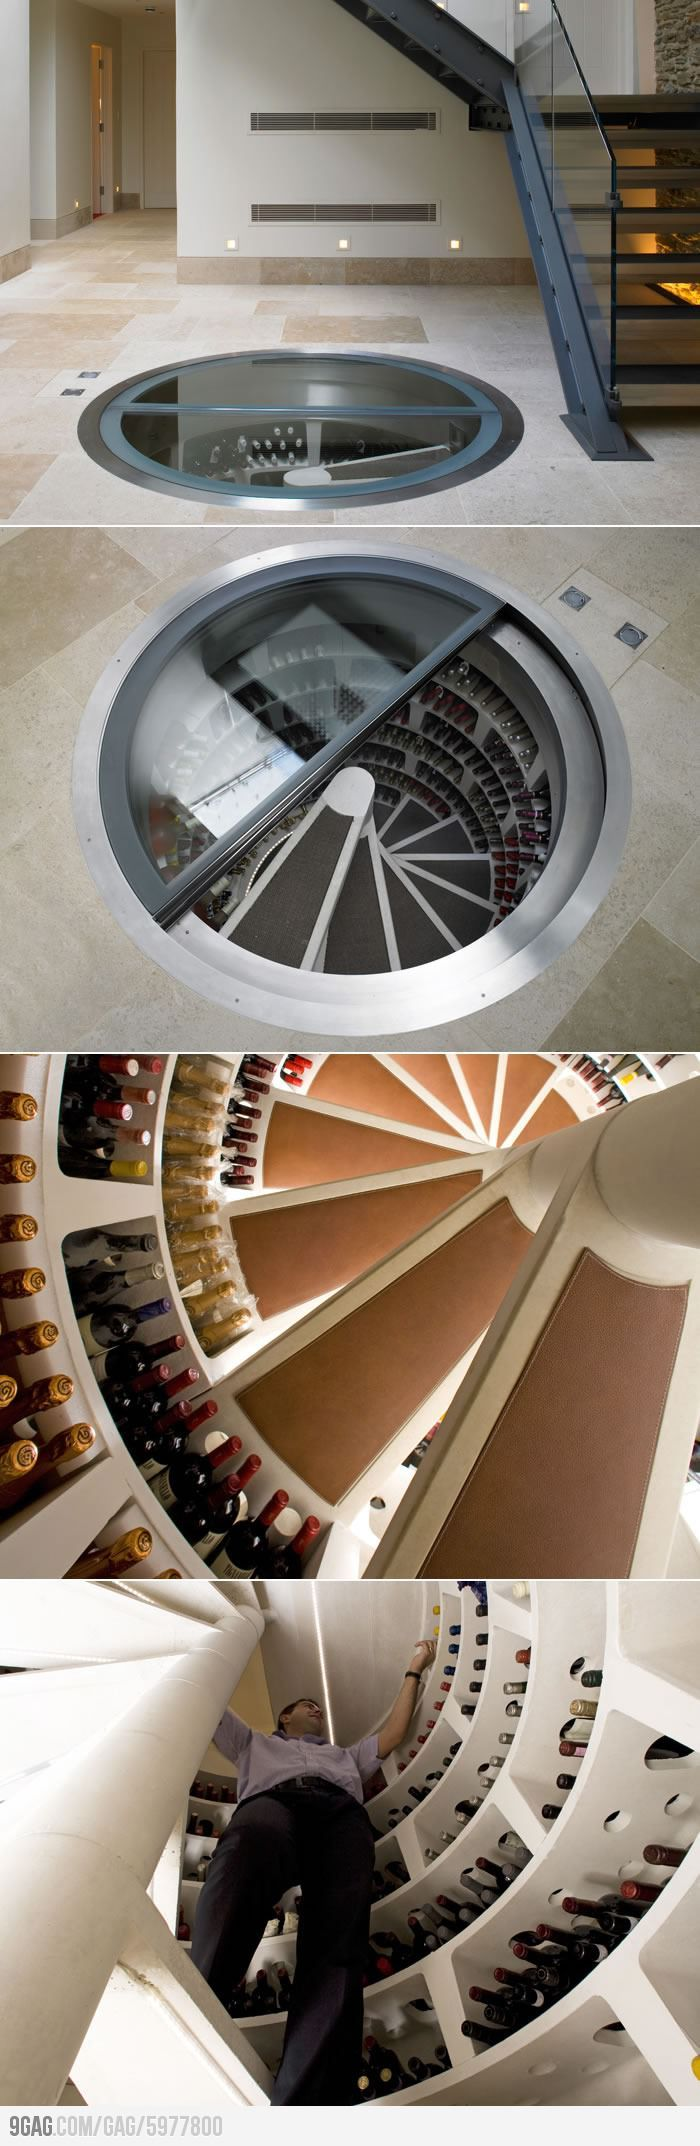 Spiral Wine Cellar... Amazing architectural design and I just love the clean lines... #splendid